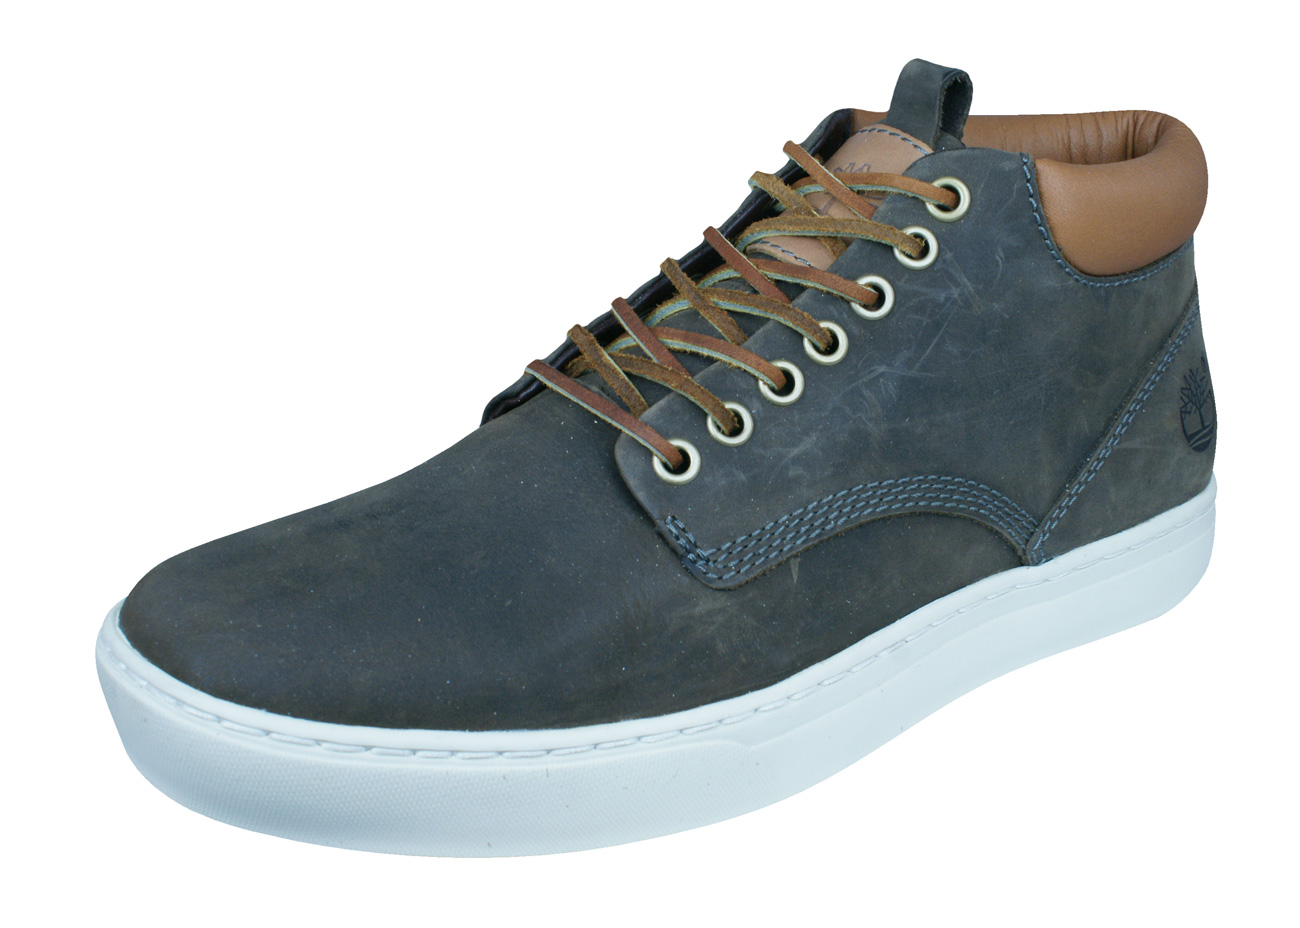 timberland earthkeepers cupsole chukka mens leather desert boots olive at. Black Bedroom Furniture Sets. Home Design Ideas